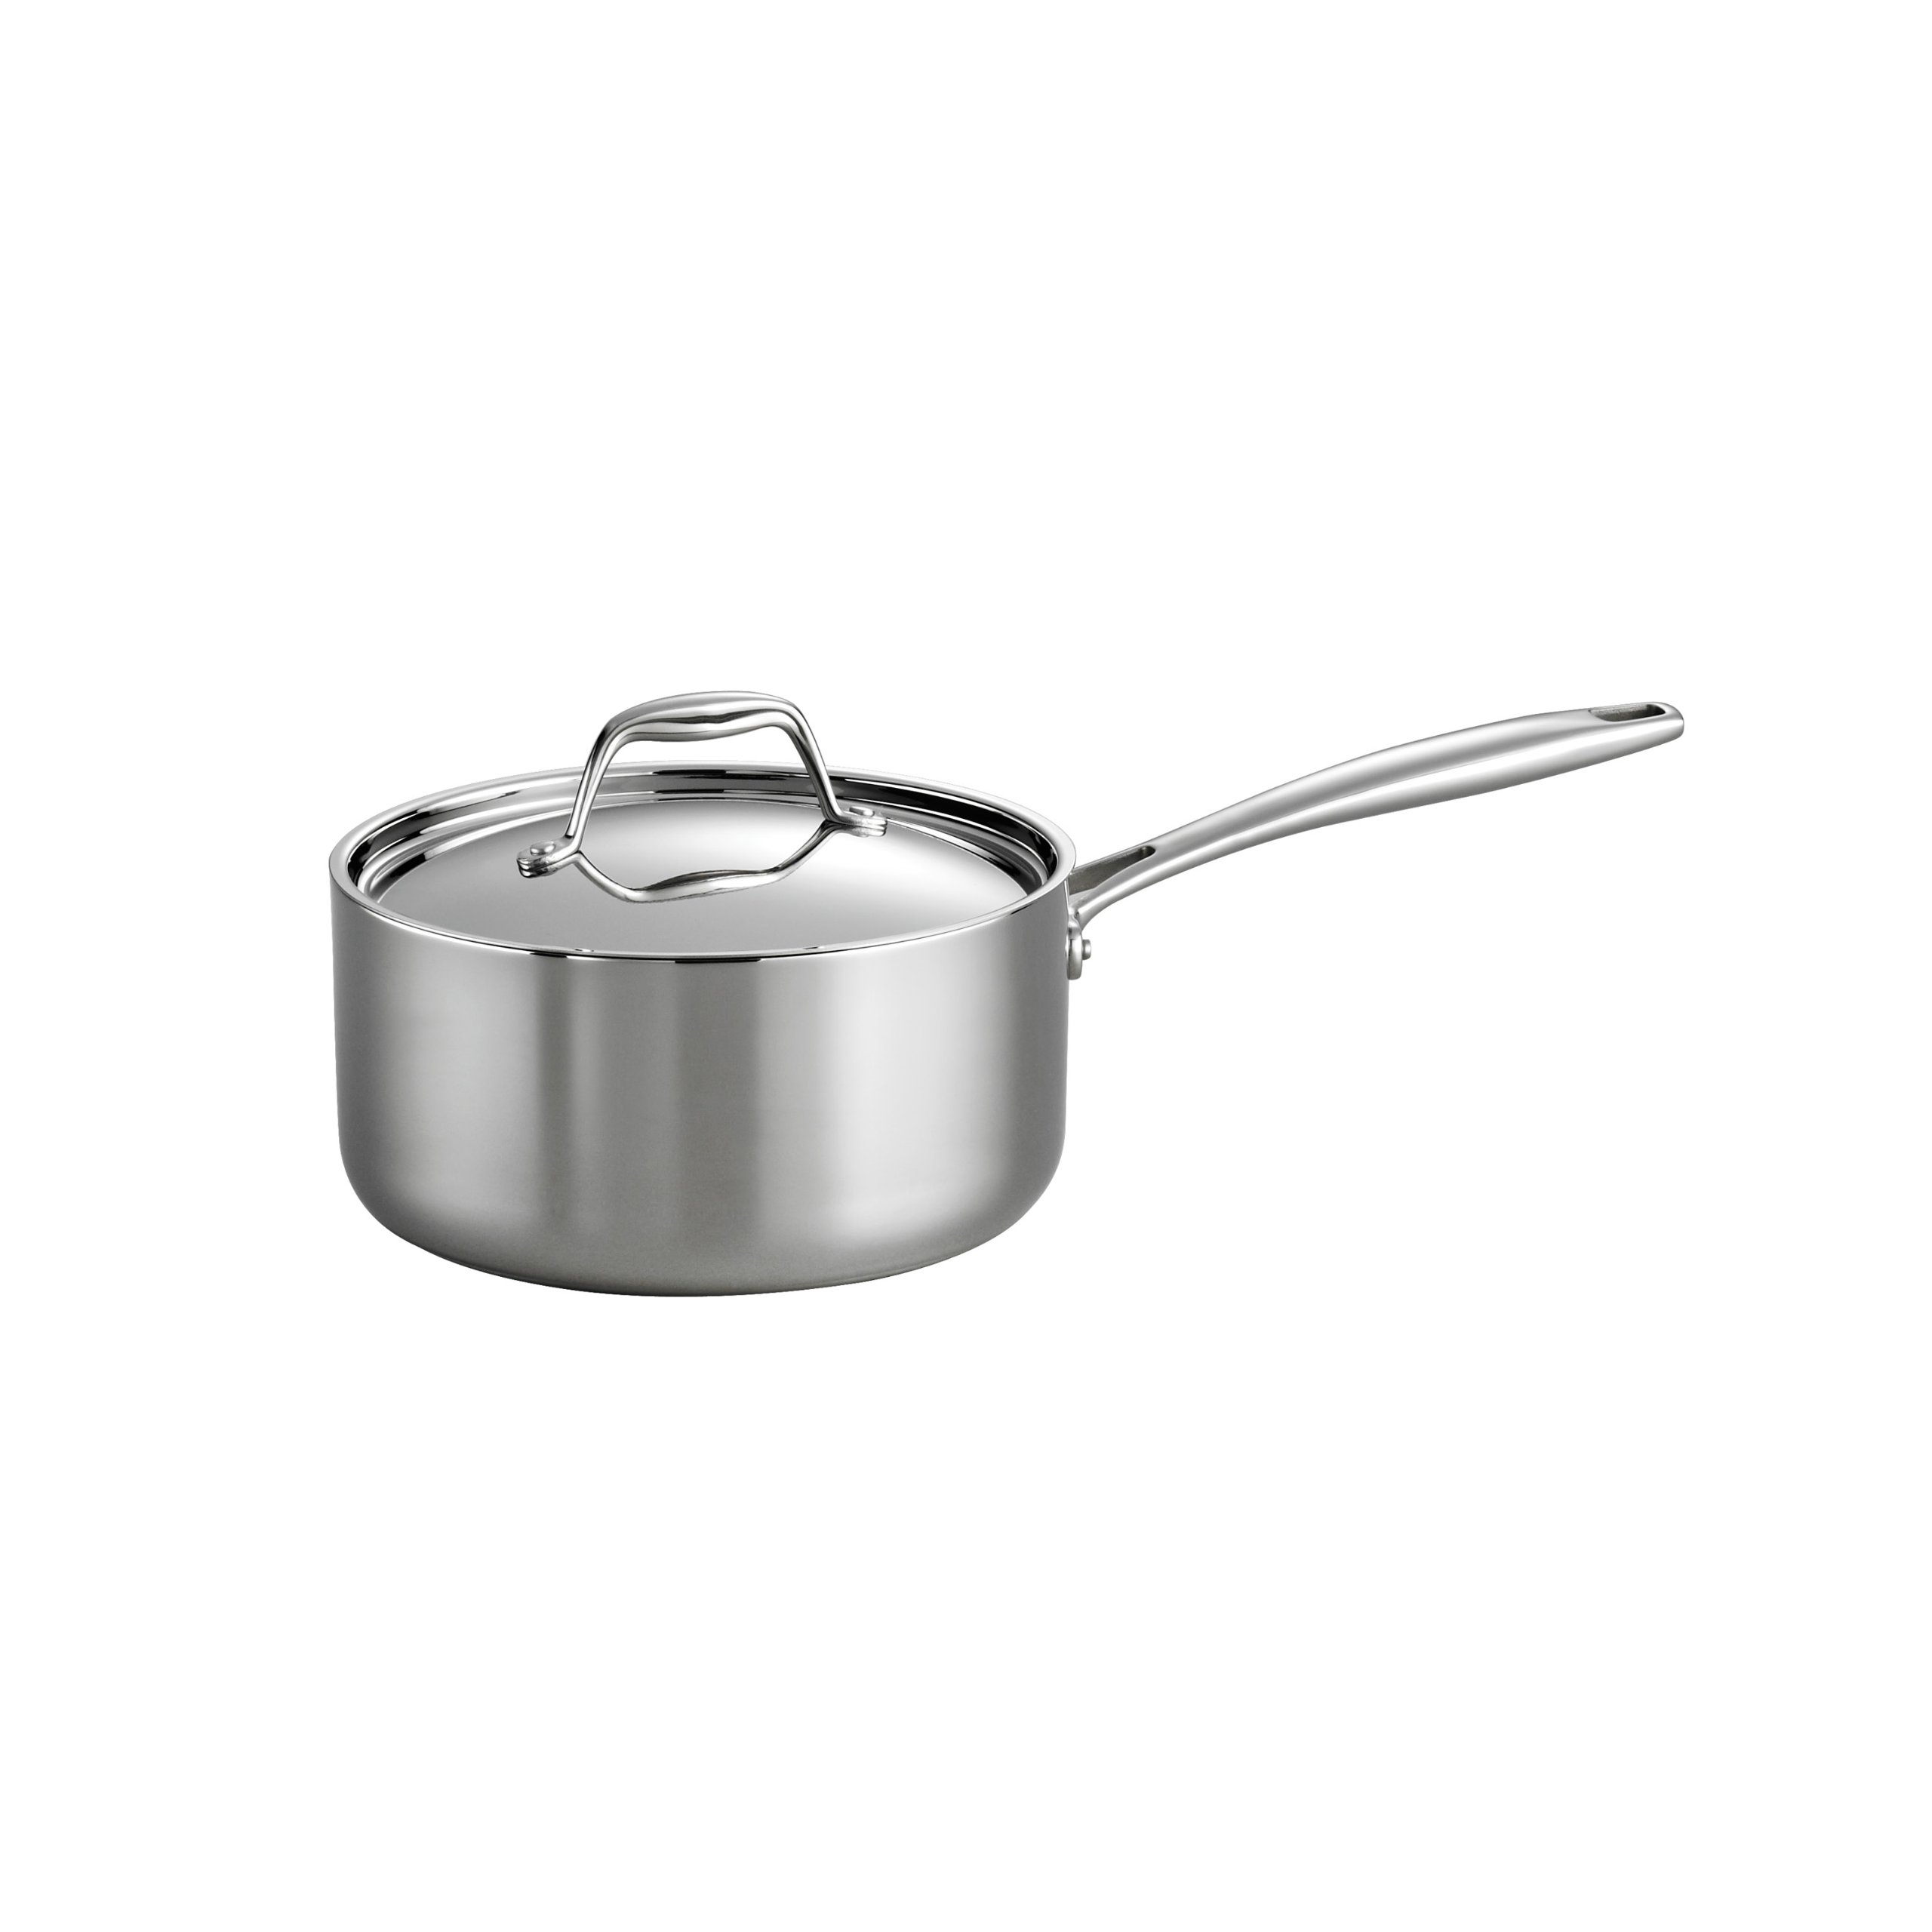 Tramontina 80116/023DS Sauce pan 3-Quart Stainless Steel